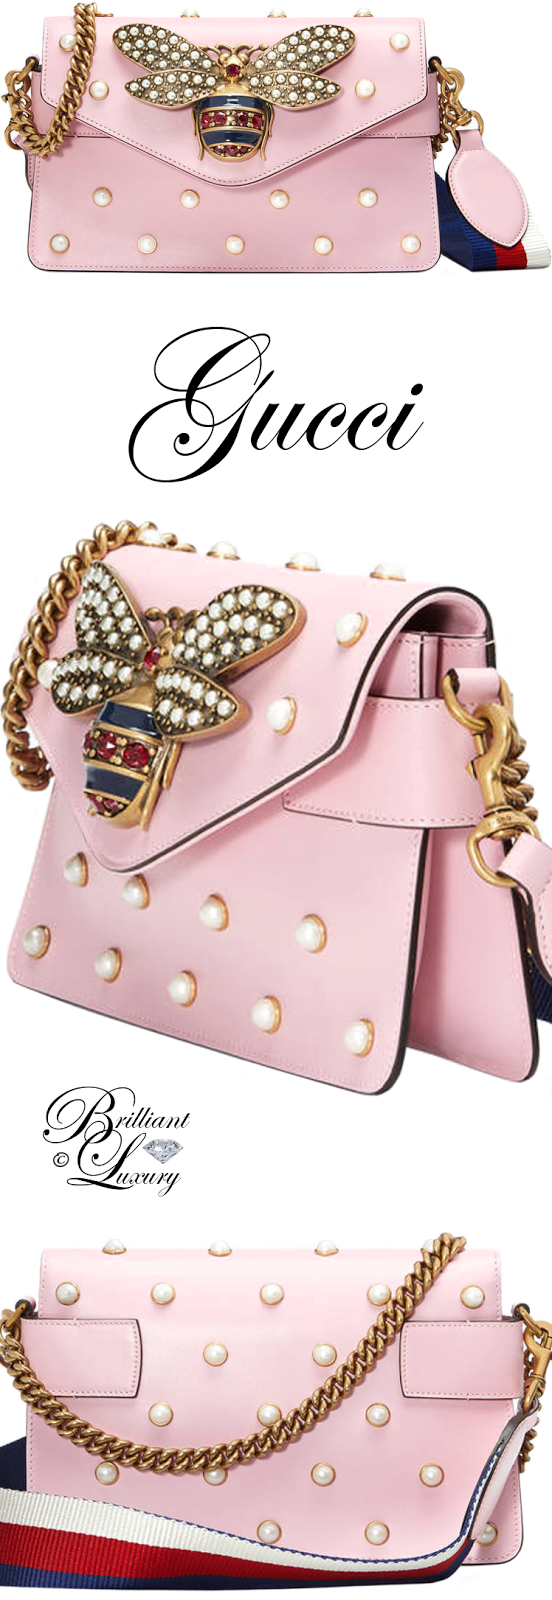 Brilliant Luxury ♦ Gucci Broadway Leather Mini Bag